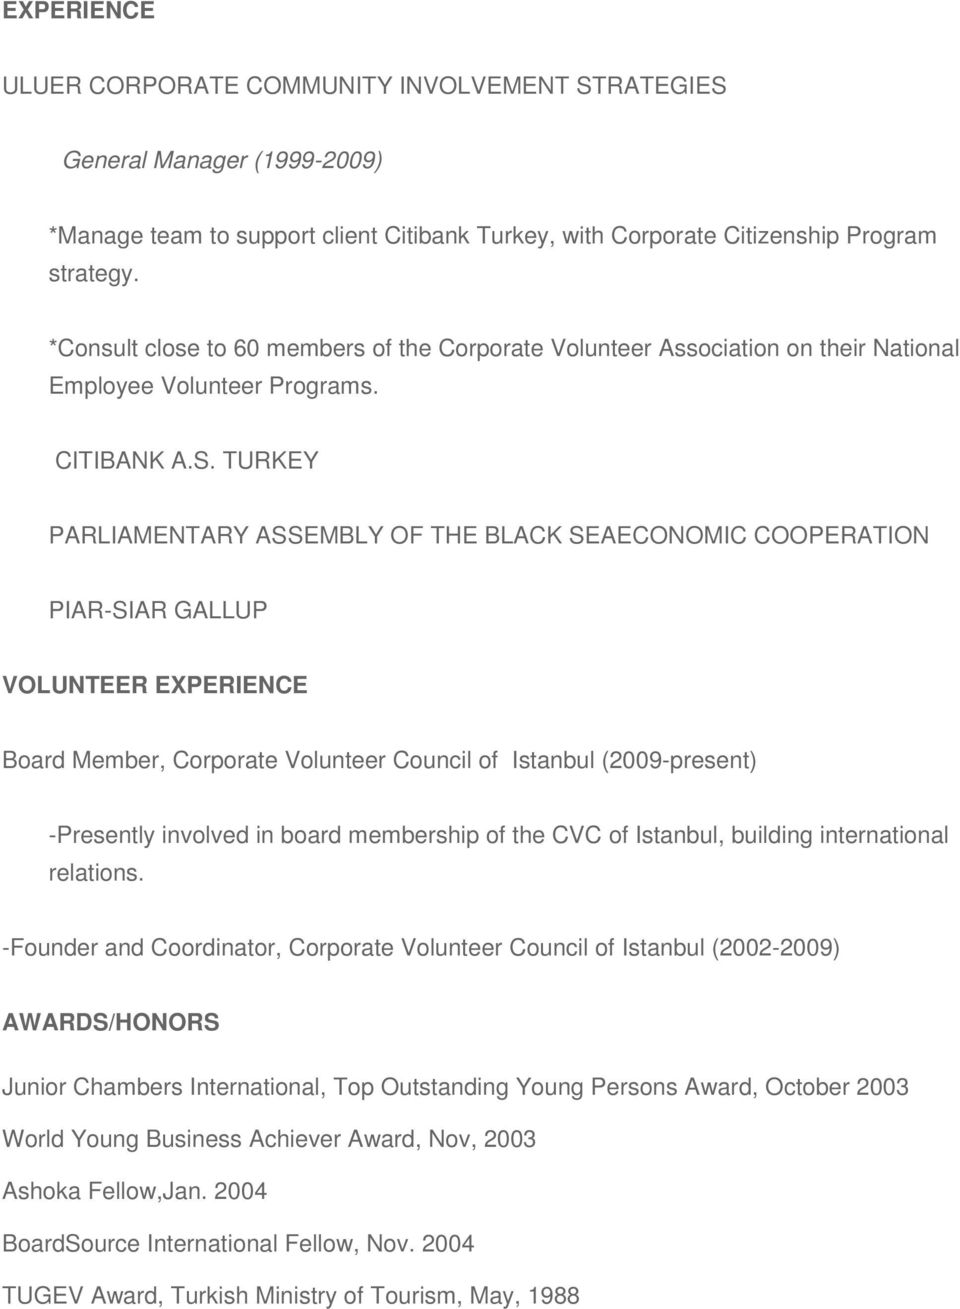 TURKEY PARLIAMENTARY ASSEMBLY OF THE BLACK SEAECONOMIC COOPERATION PIAR-SIAR GALLUP VOLUNTEER EXPERIENCE Board Member, Corporate Volunteer Council of Istanbul (2009-present) -Presently involved in